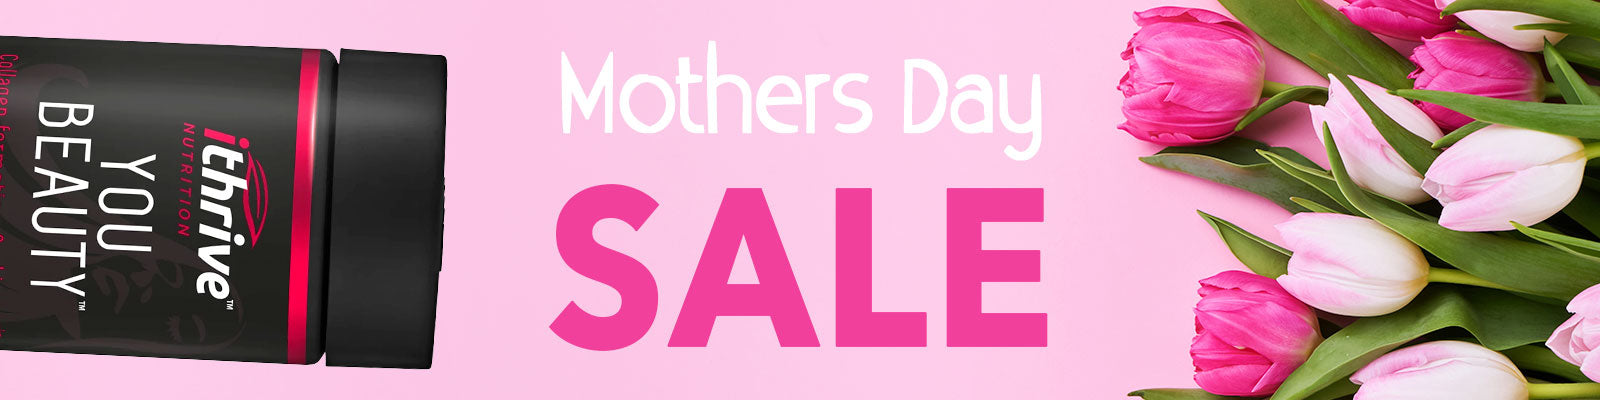 iThrive Mothers Day sale